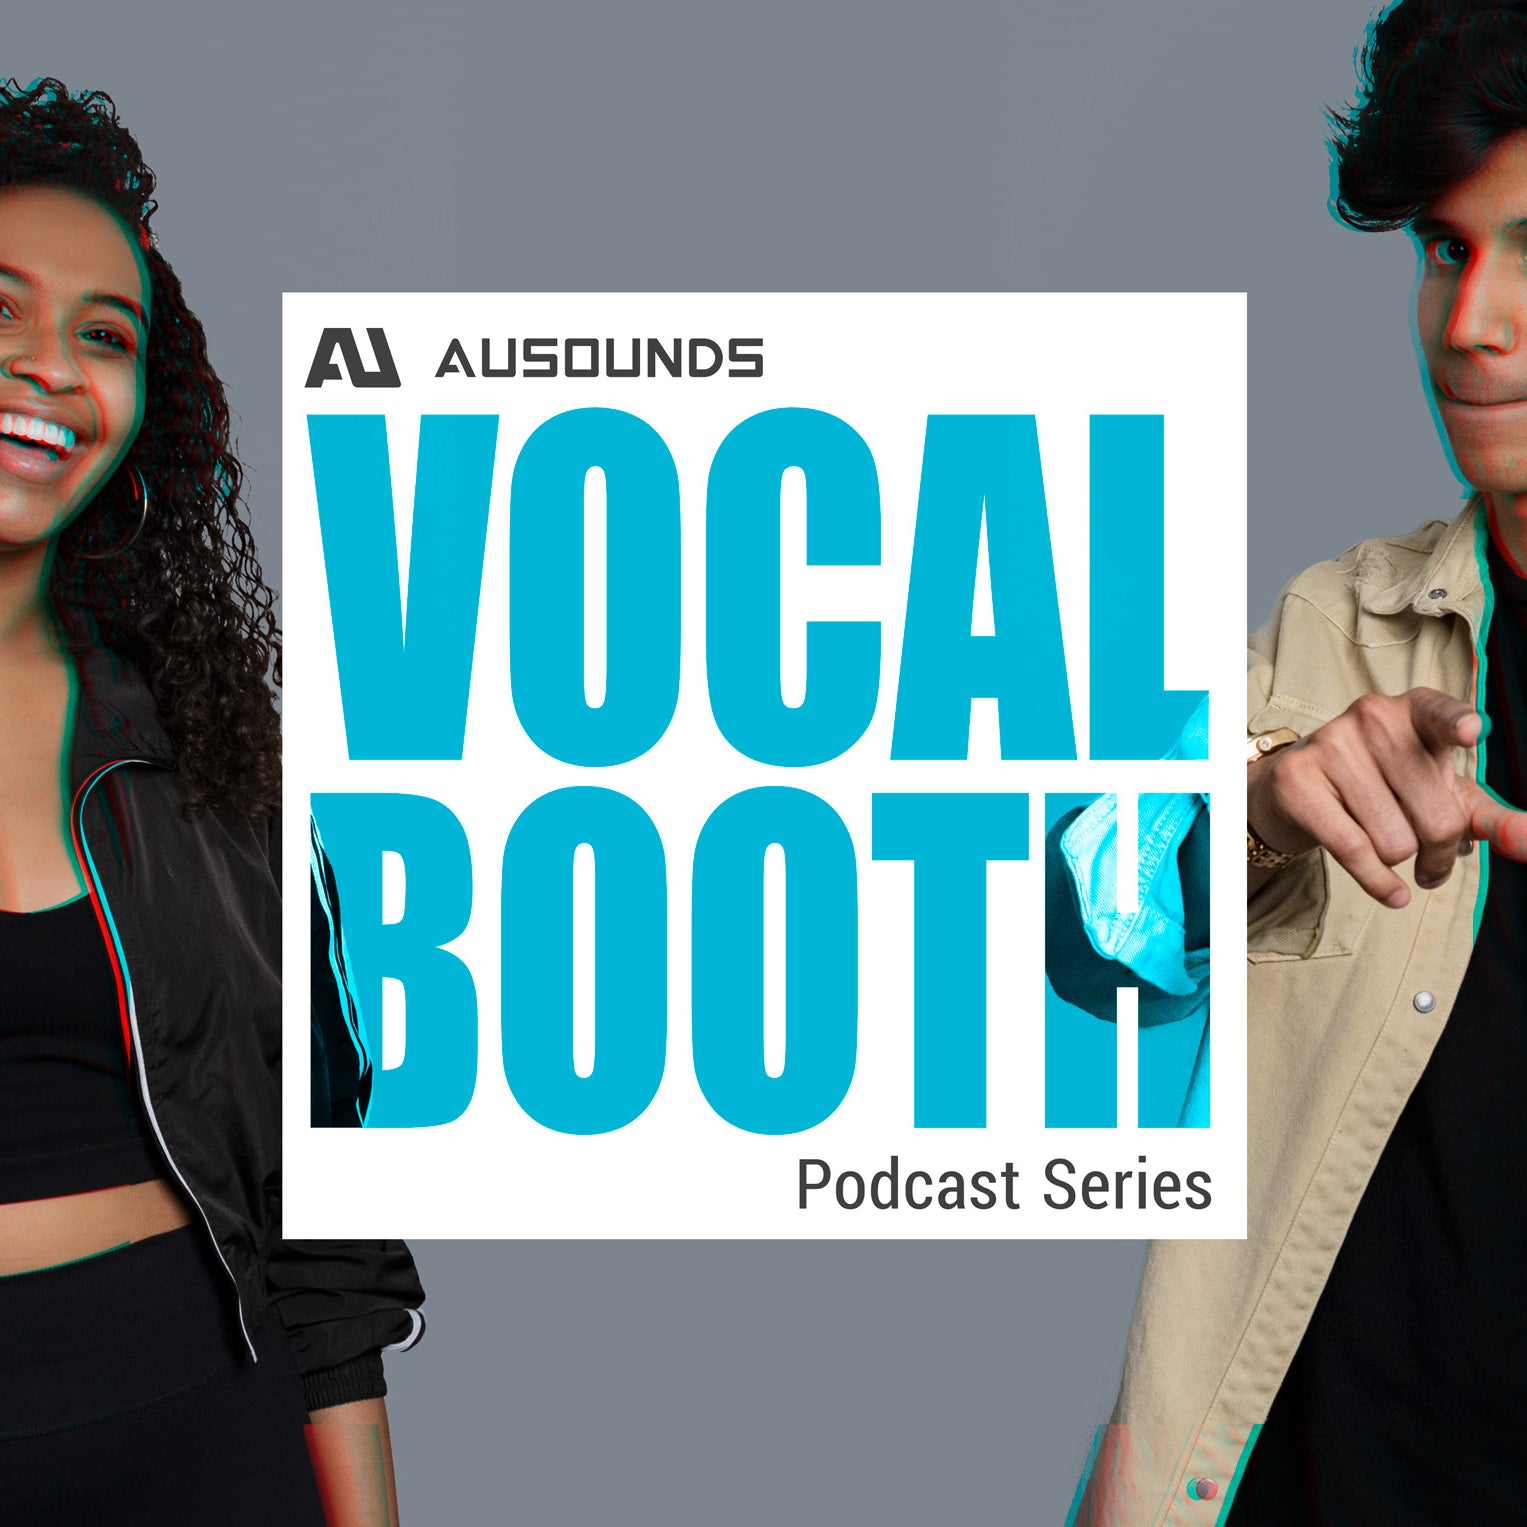 Cabina vocal de Ausounds